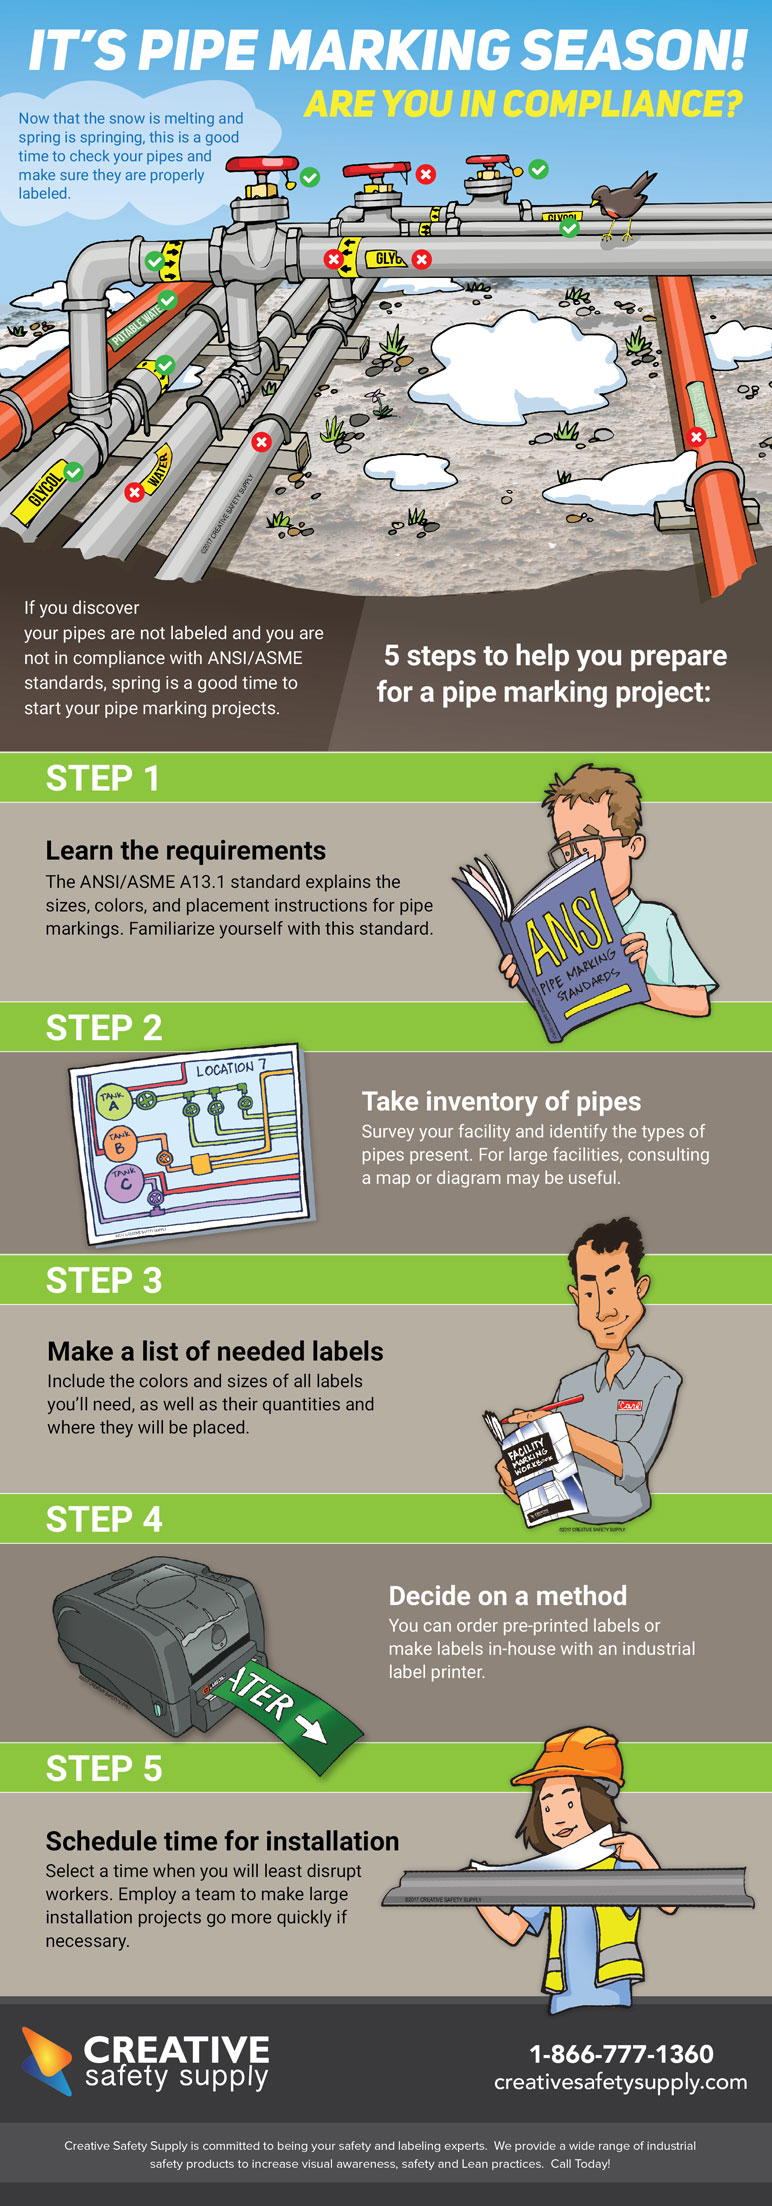 It's Pipe Marking Season! Are you in compliance?